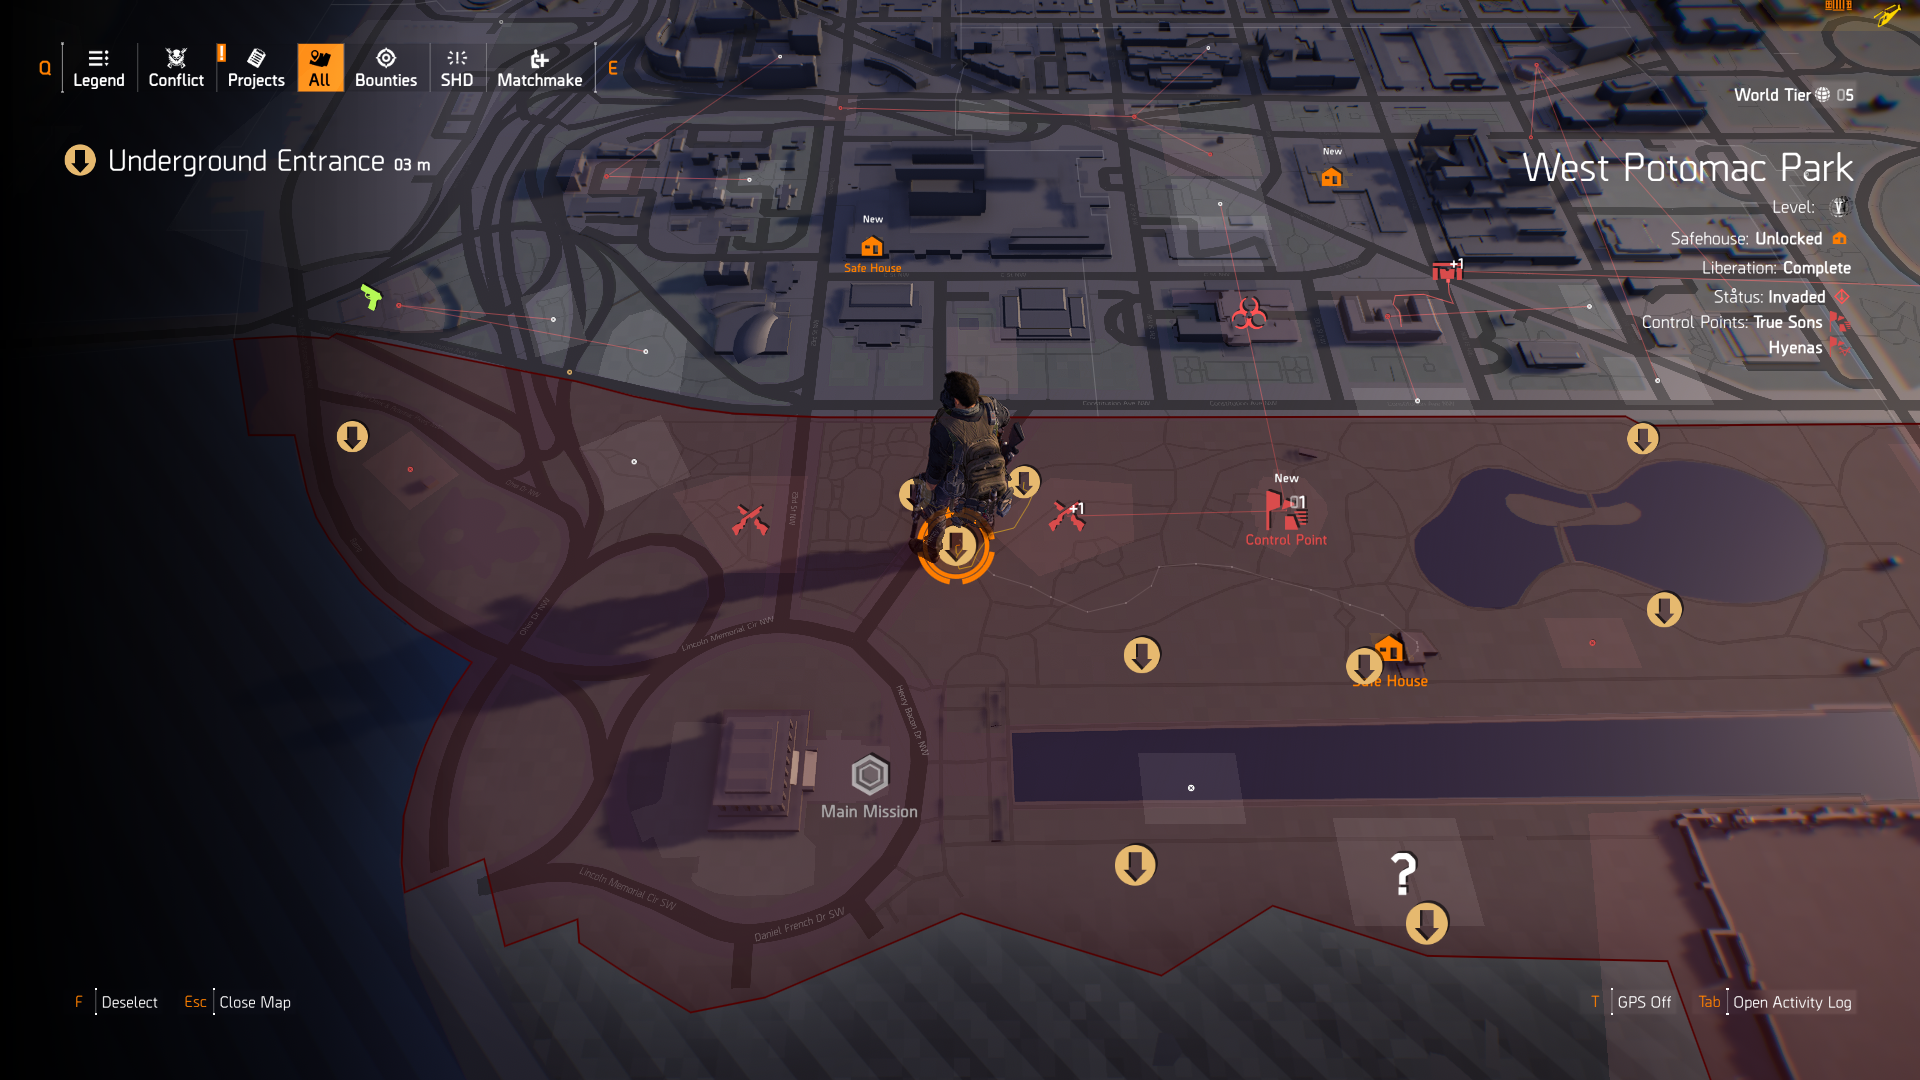 Find Hunters & Collect Masks in The Division 2 - Blogs - Gamepedia